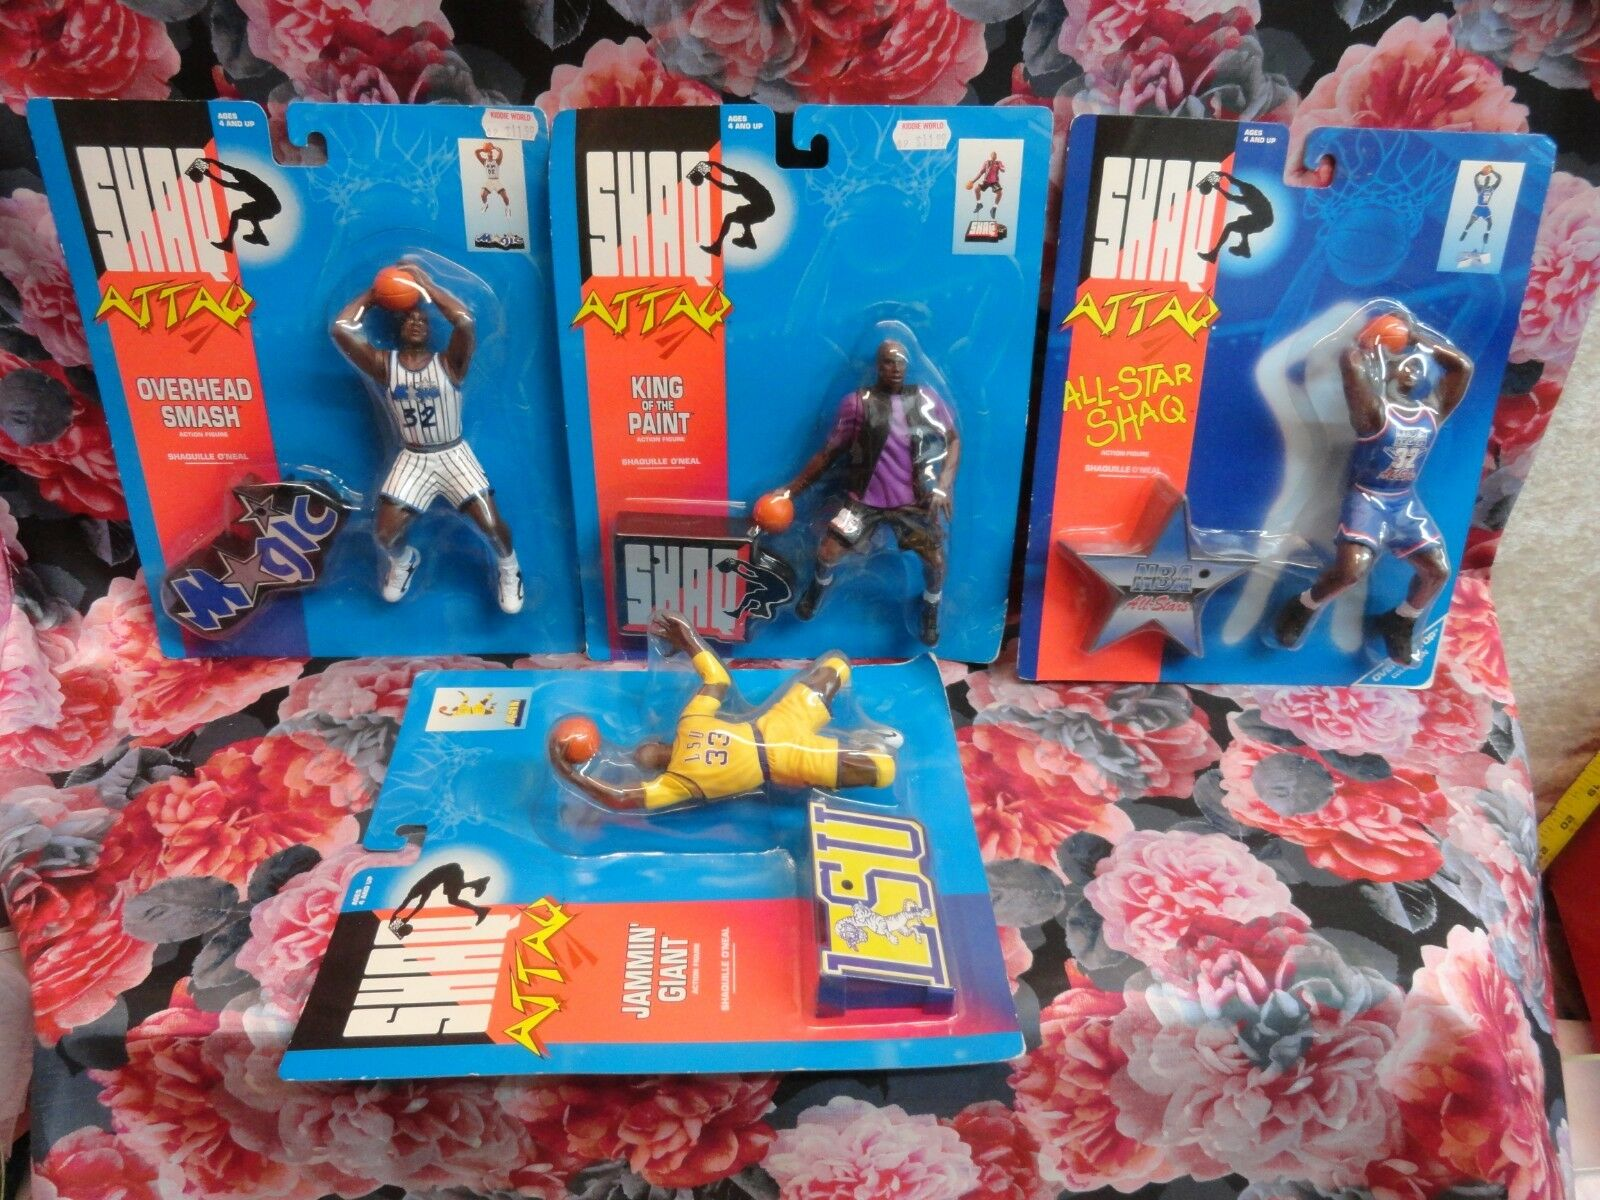 Shaq Attaq  KENNER FIGURINES Lot of 5 1993 NEW NEVER OPENED